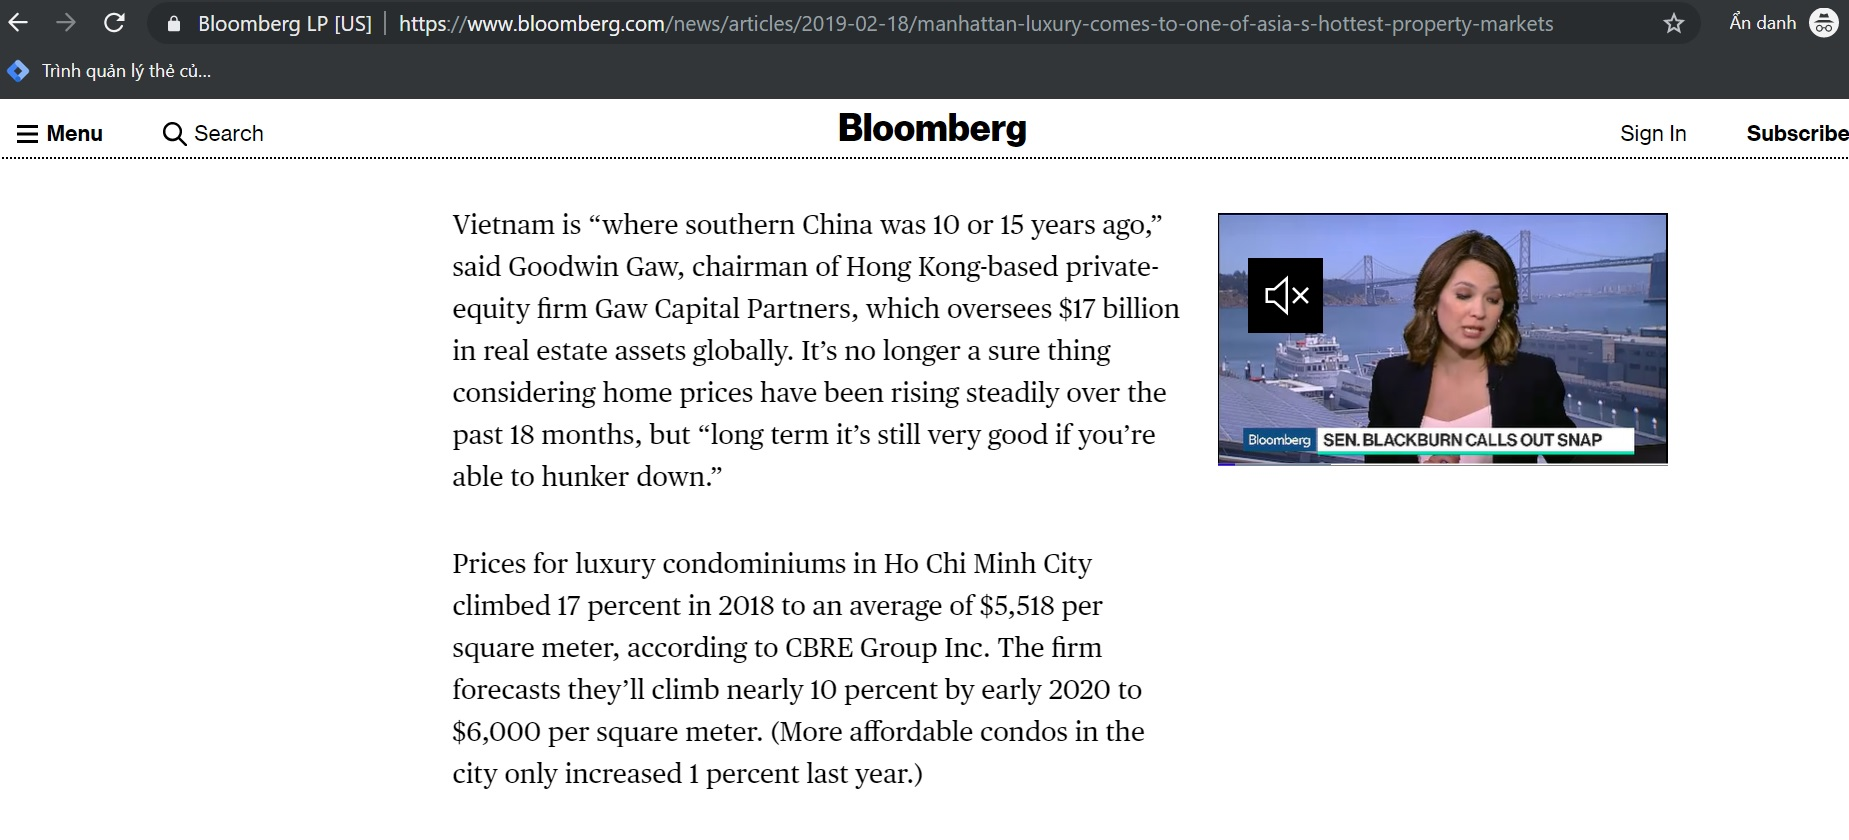 bloomberg-nhan-dinh-the-grand-manhattan